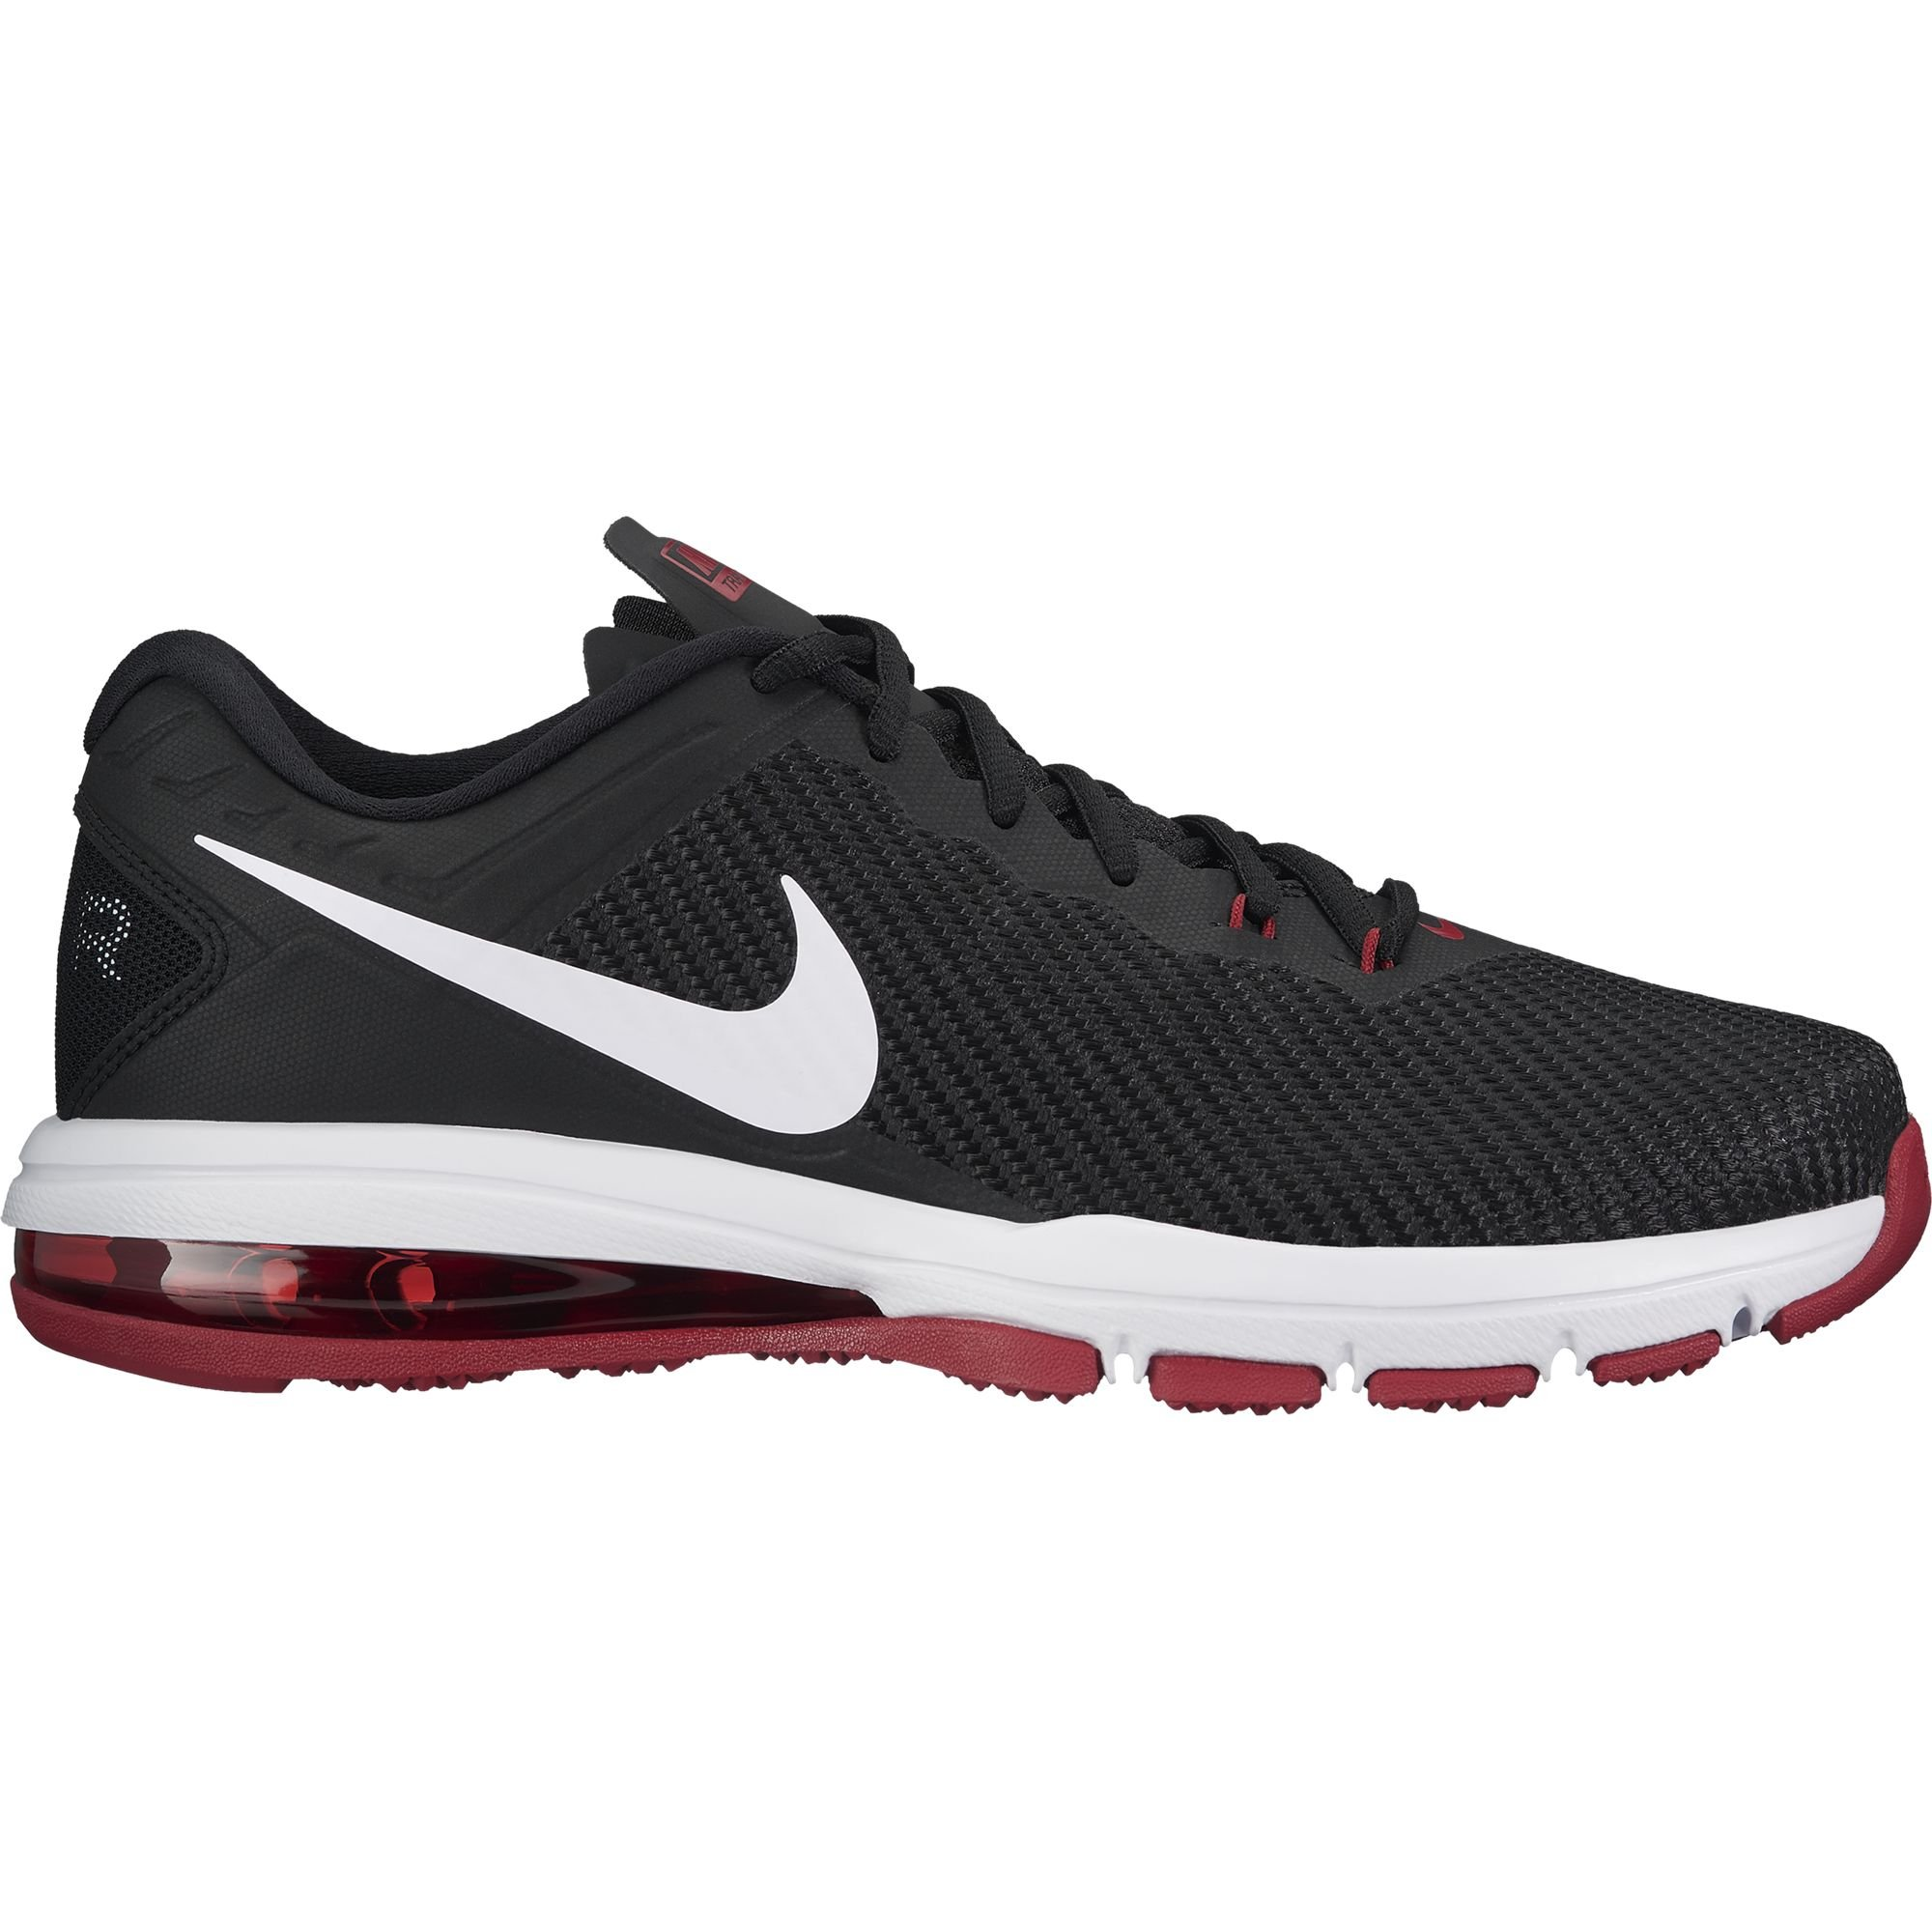 hot sale online 226e2 9ea37 Galleon - Nike Men s Air Max Full Ride TR 1.5 Training Shoe Black White Tough  Red Size 14 M US